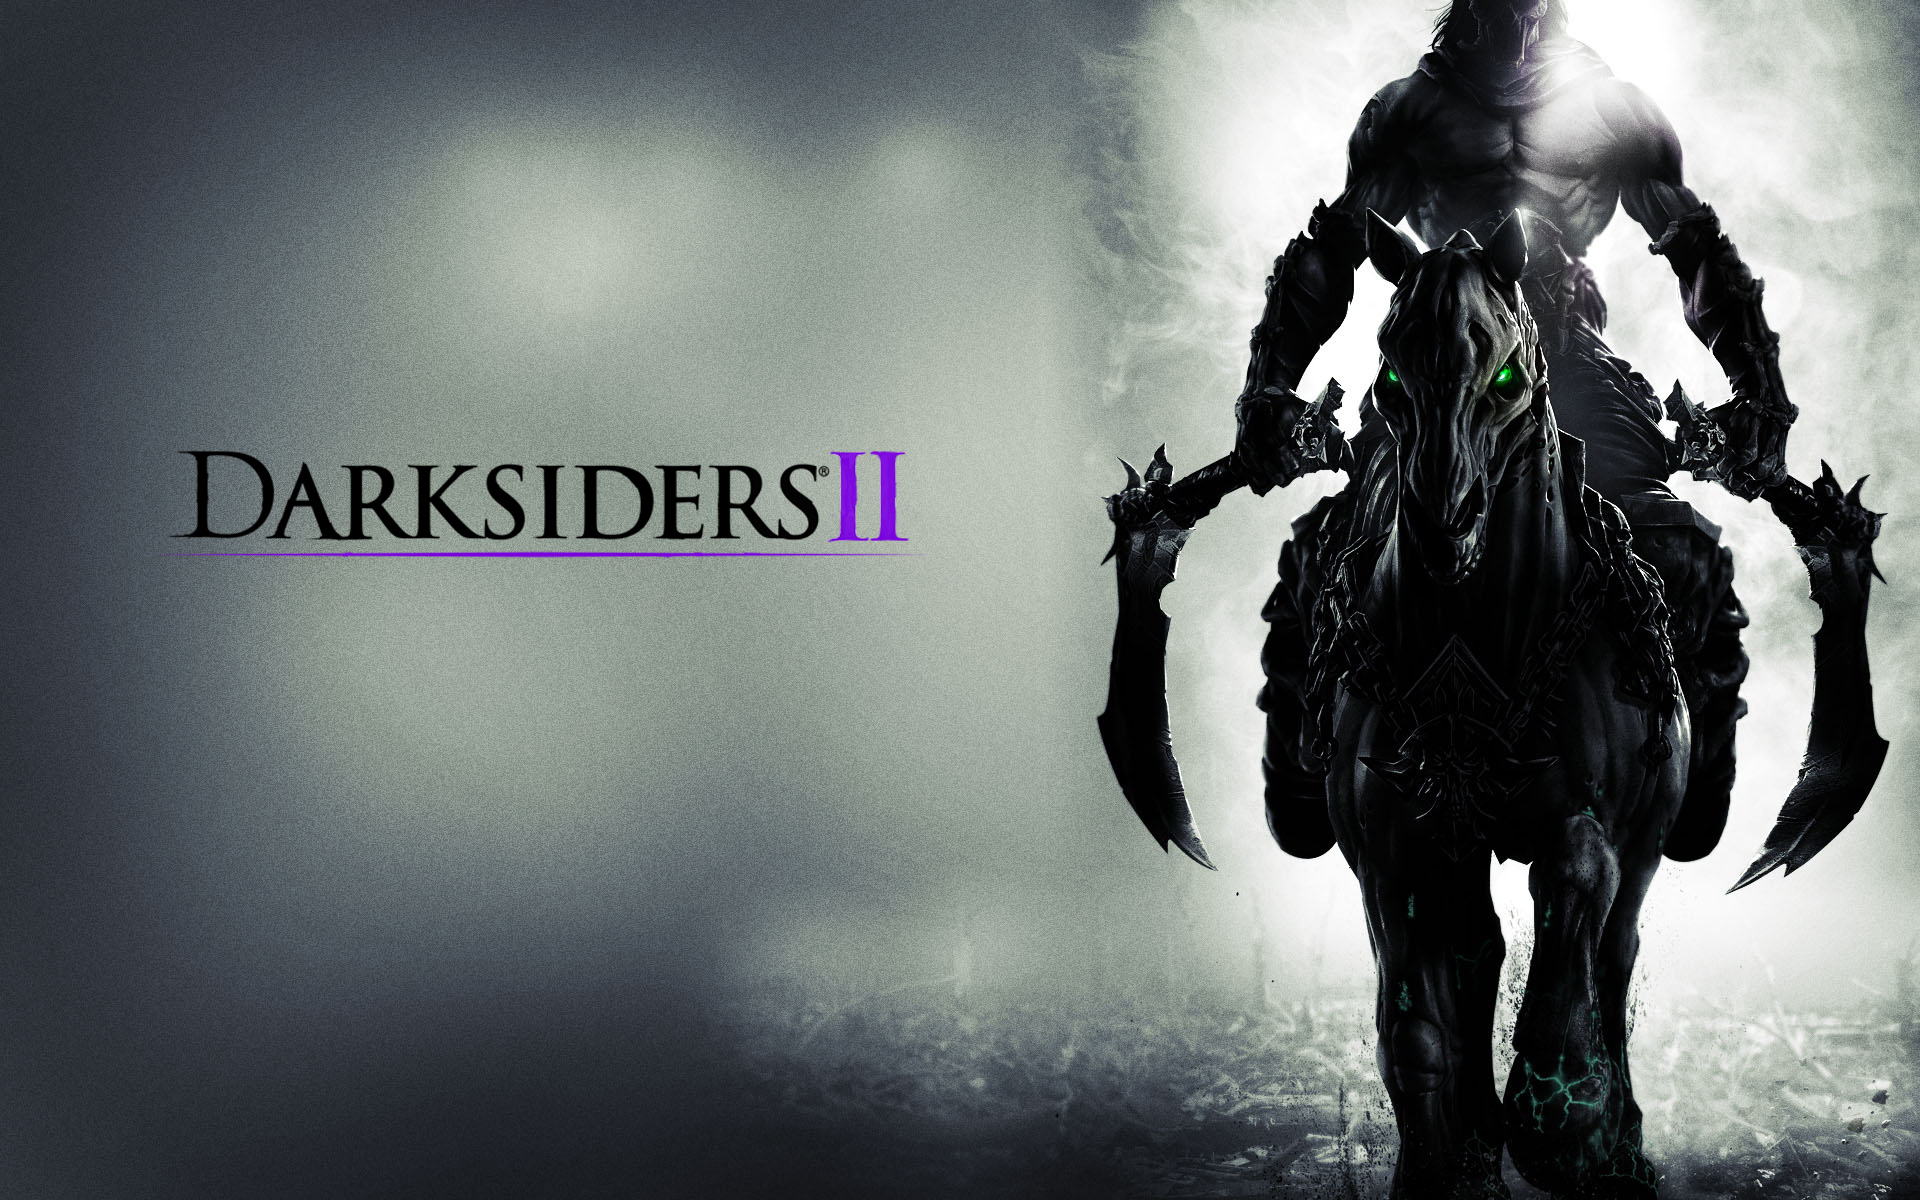 Darksiders 4k Wallpapers For Your Desktop Or Mobile Screen